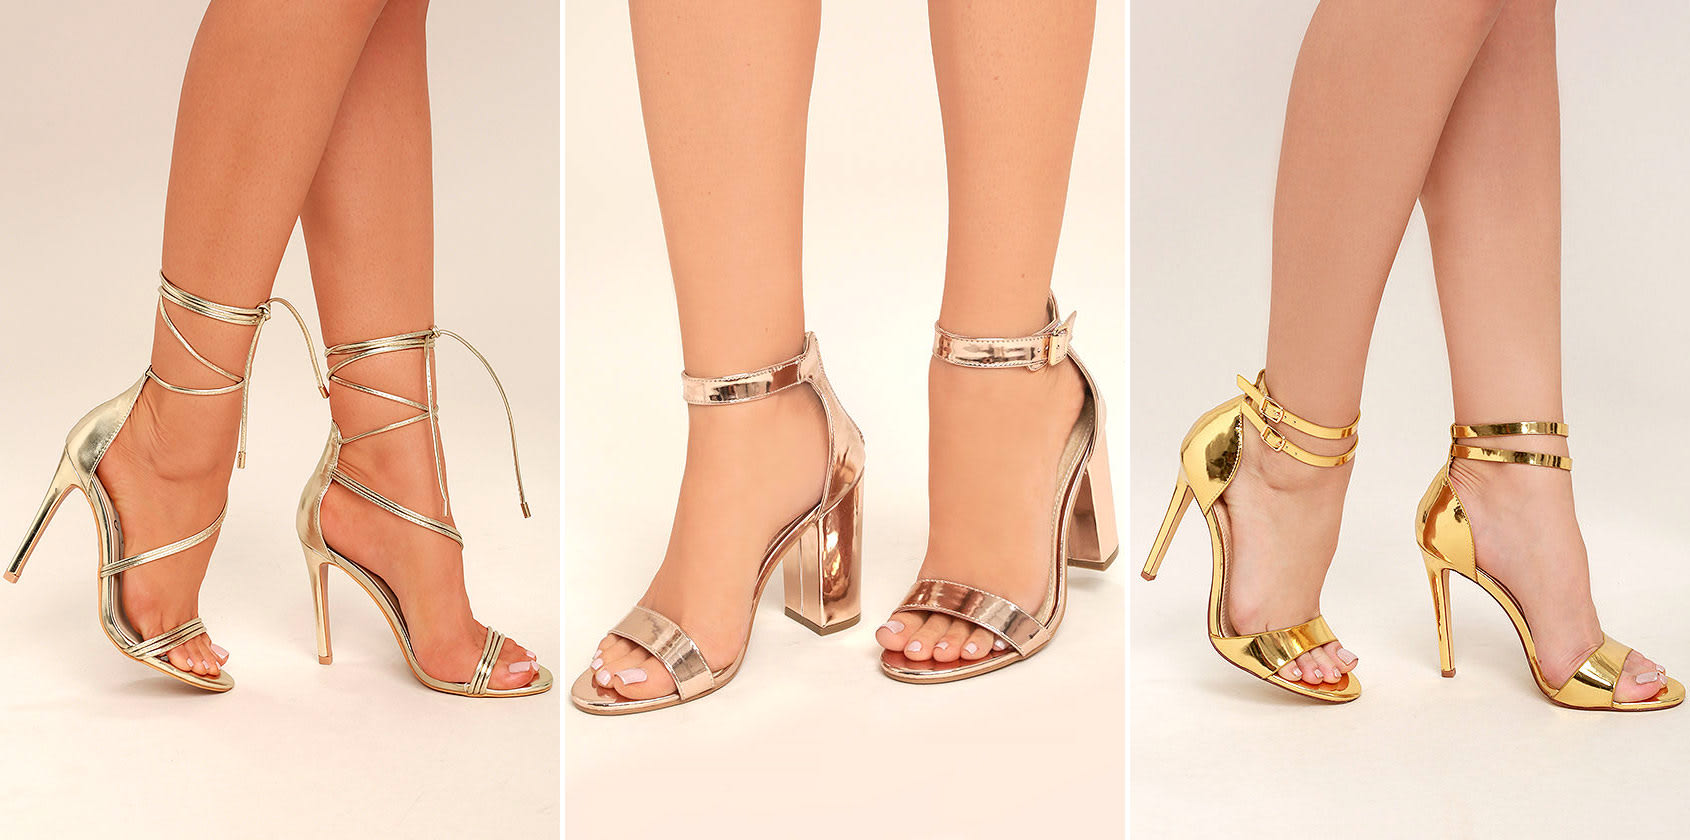 prom shoe styles - metallic